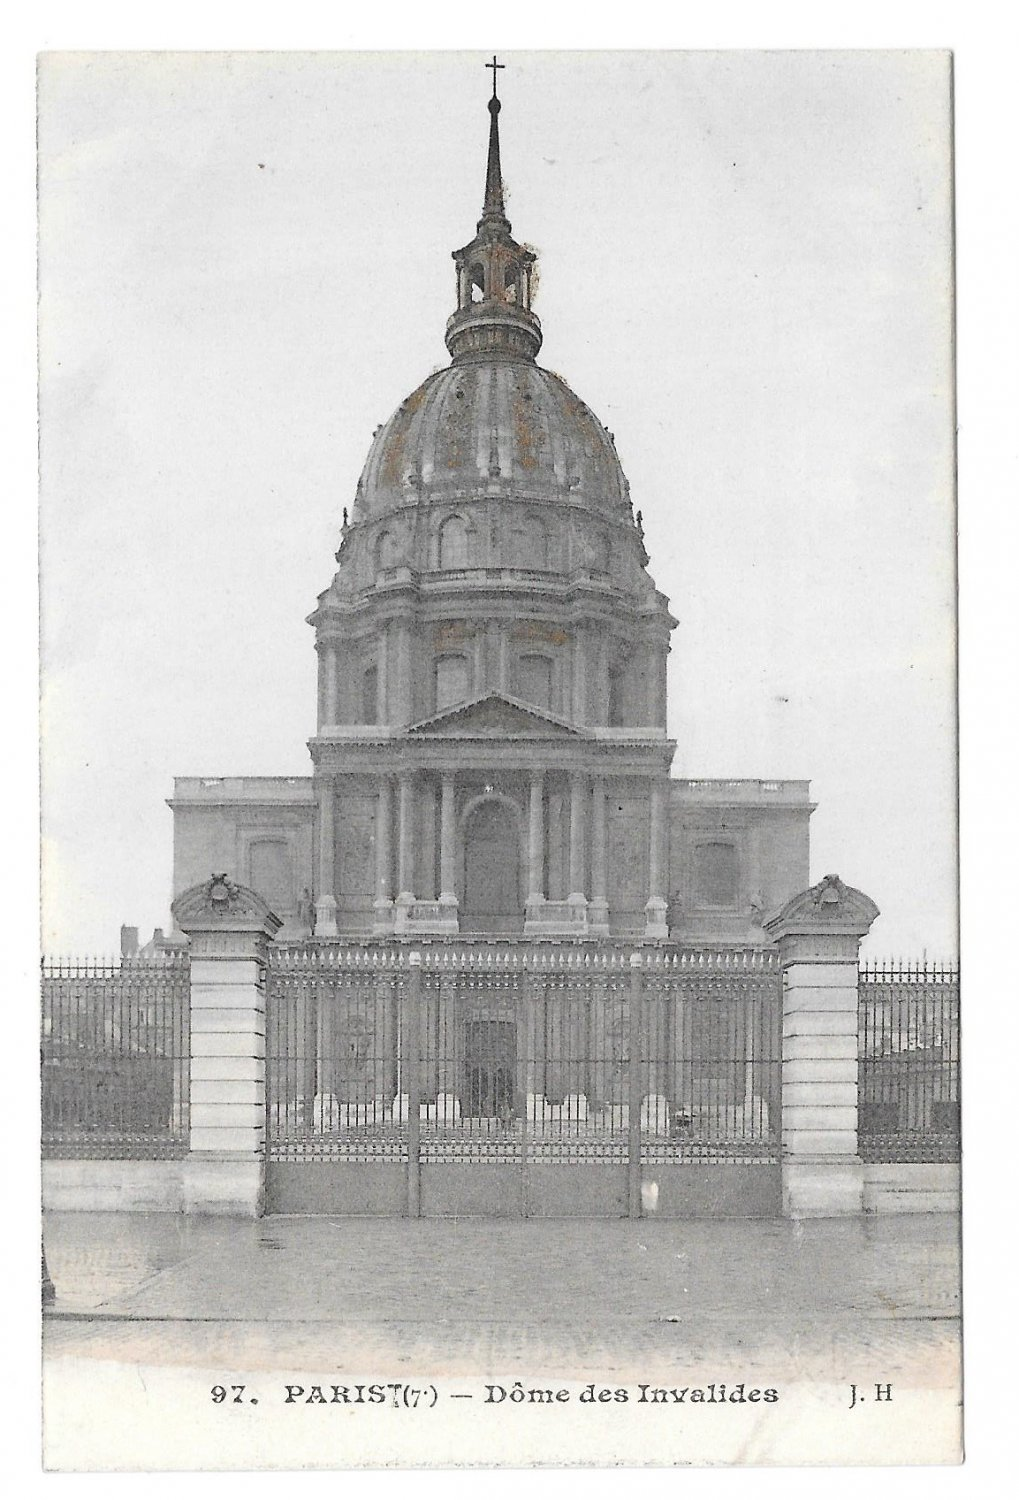 Paris France Dome des Invalides Vintage Postcard